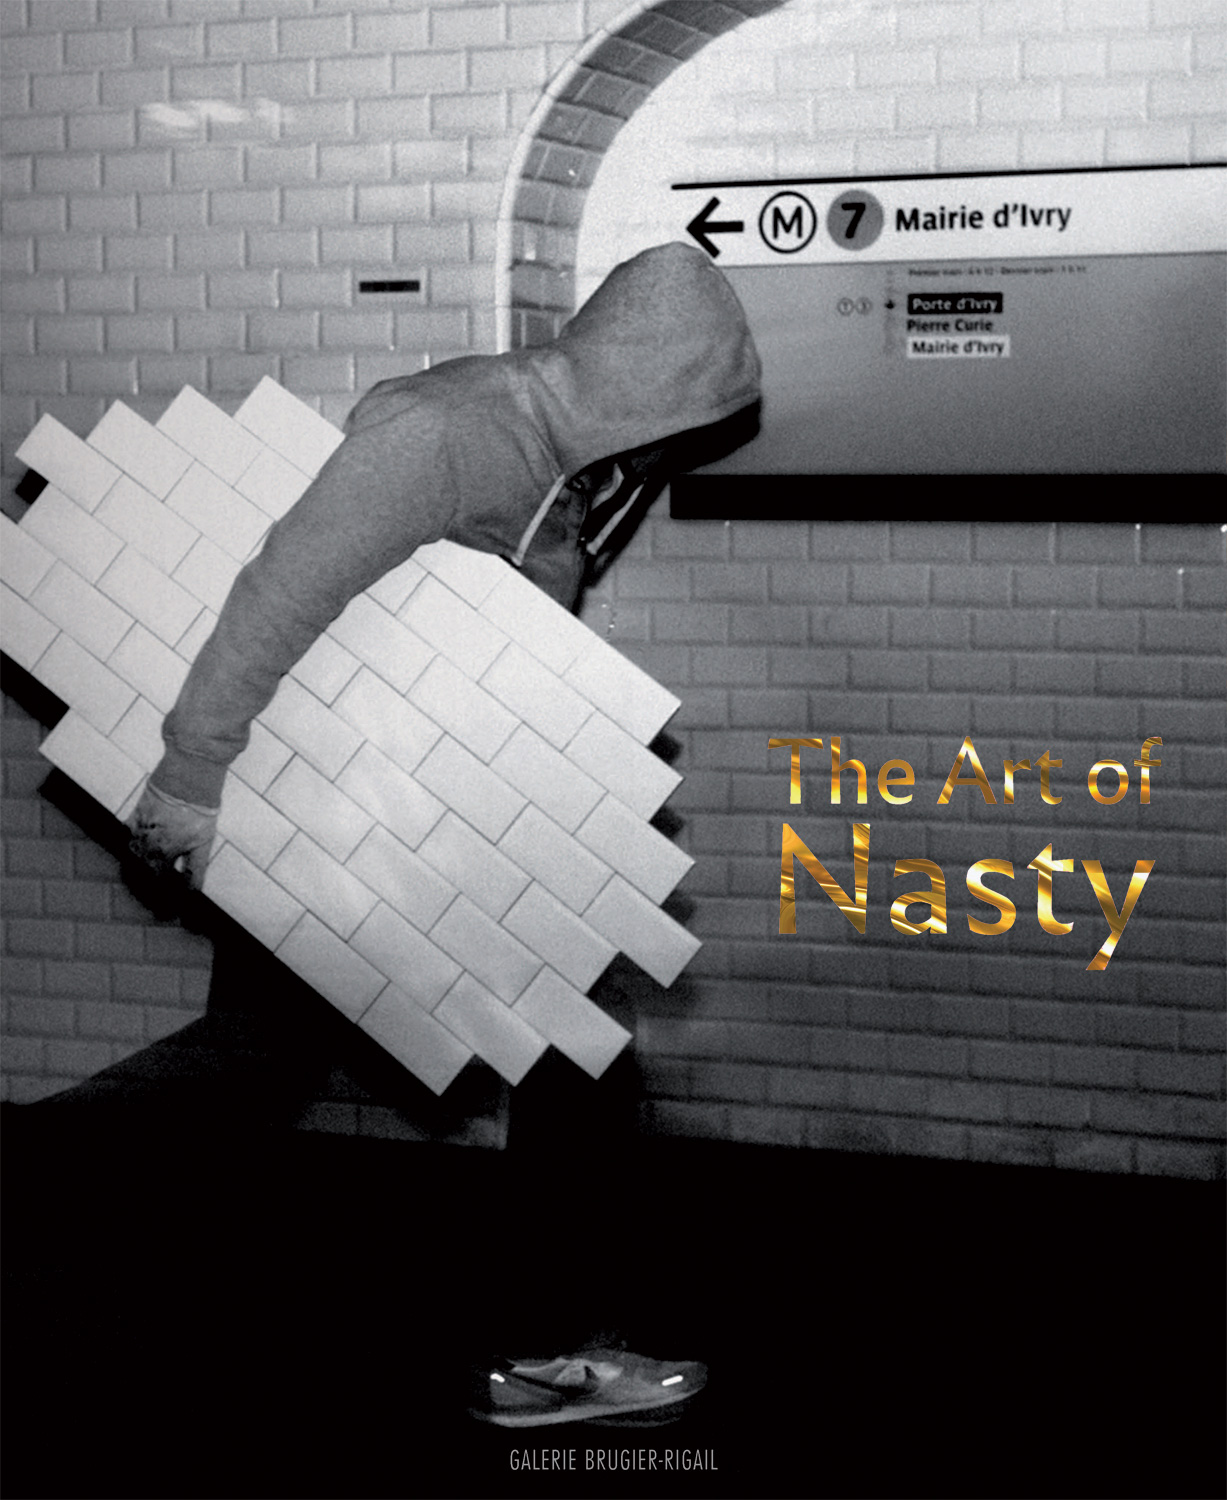 Nasty, Monographie de Nasty - The Art of Nasty, 2015